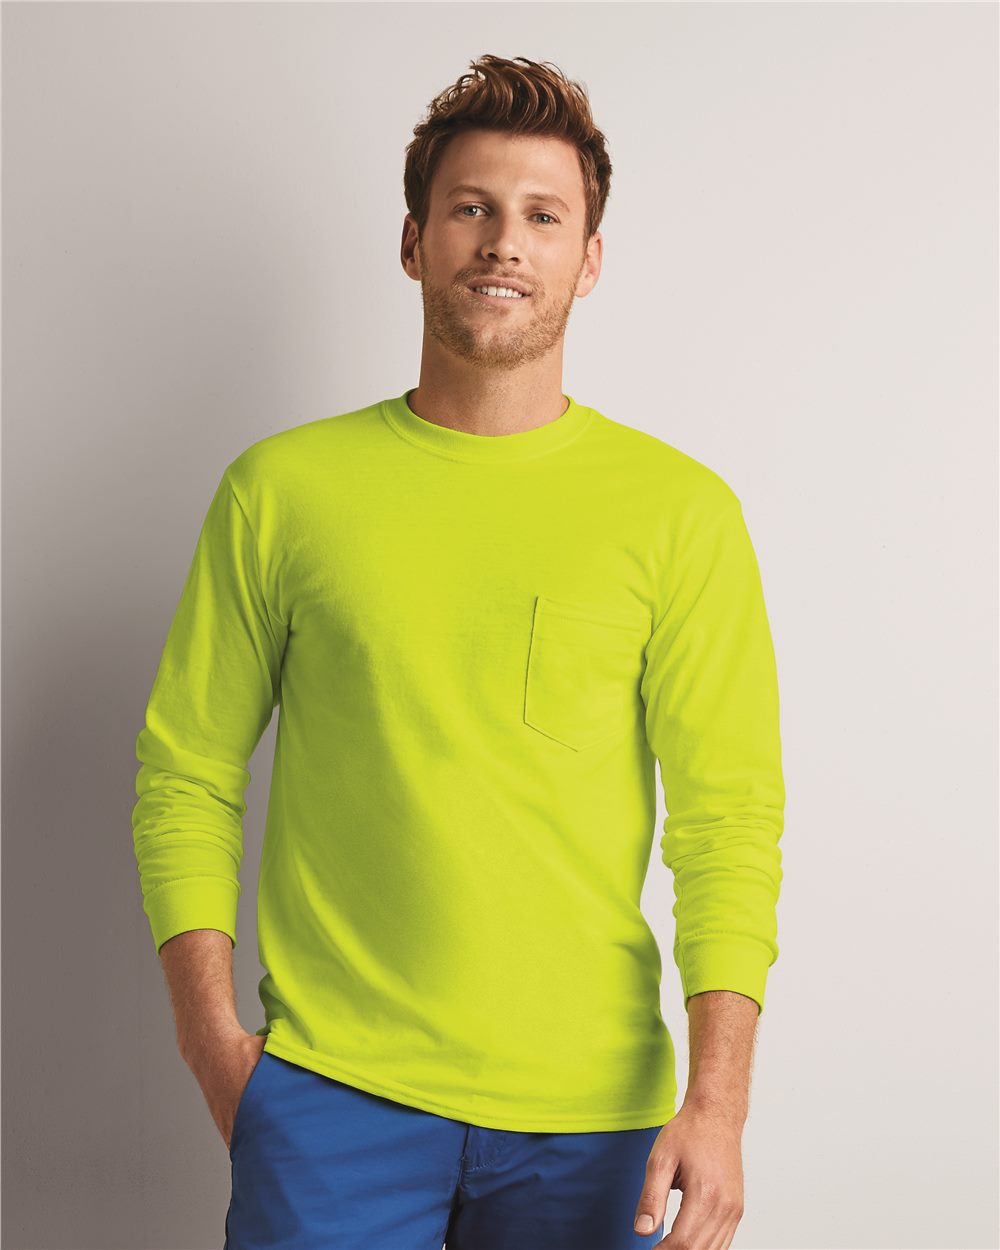 9d308464 Gildan 2410 Ultra Cotton Long Sleeve T-Shirt with a Pocket $7.42 - T Shirts